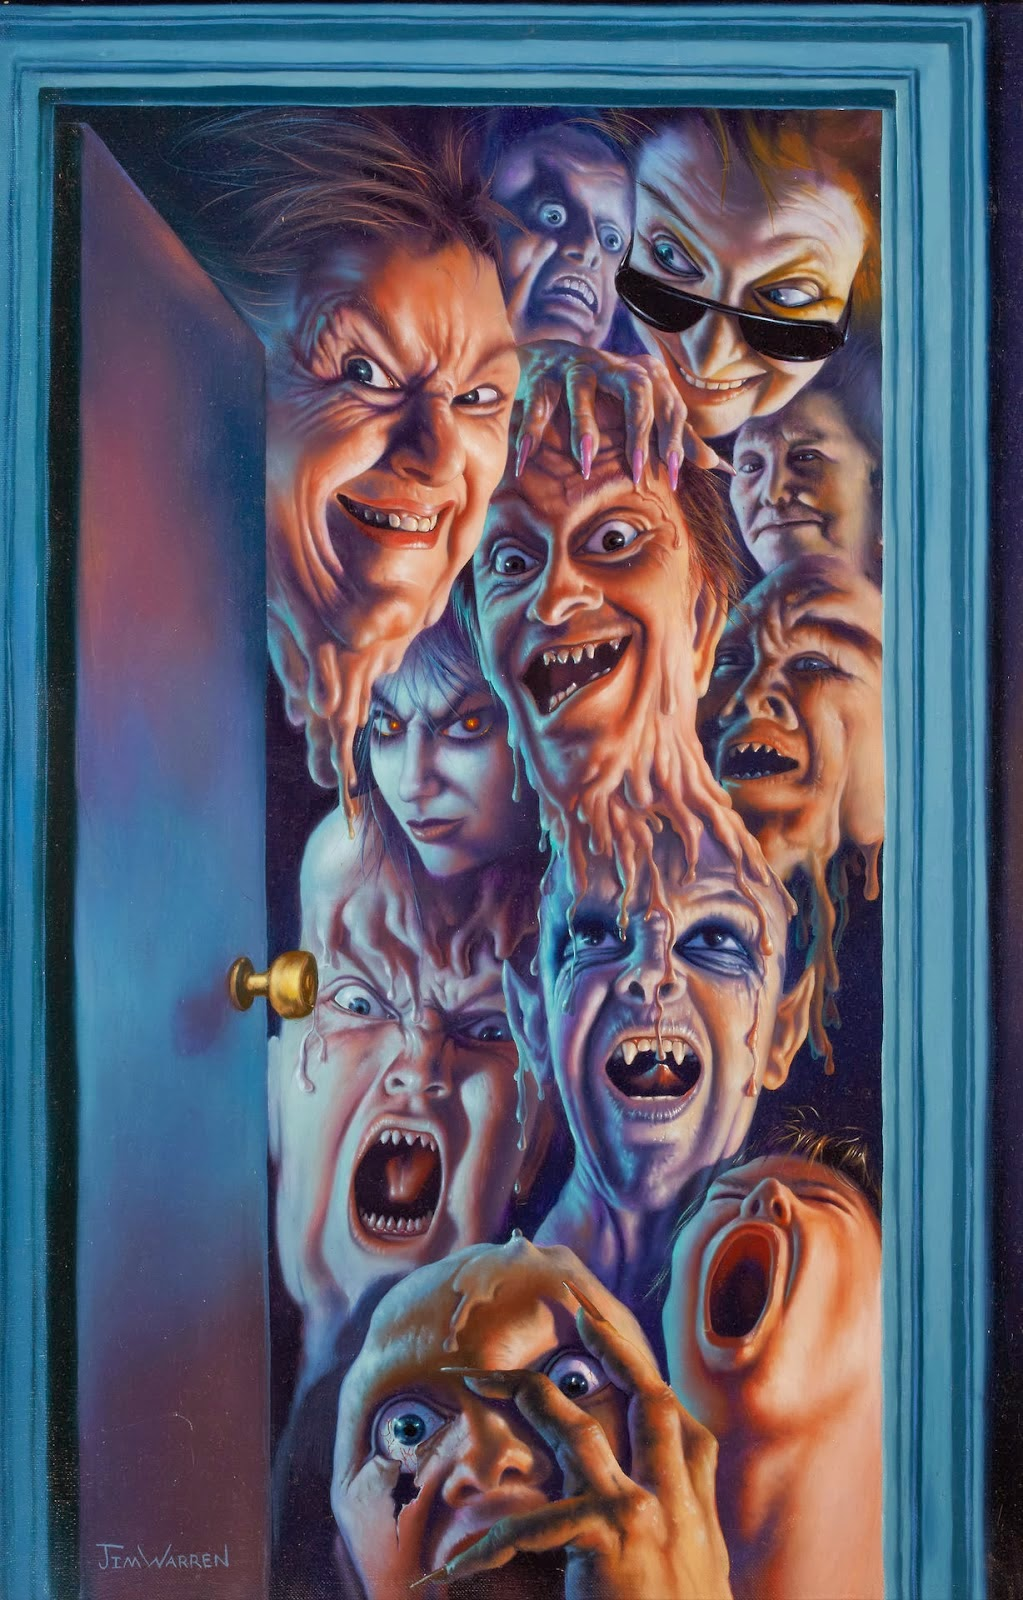 Waxwork+(1988,+USA,+Jim+Warren+Art).jpg